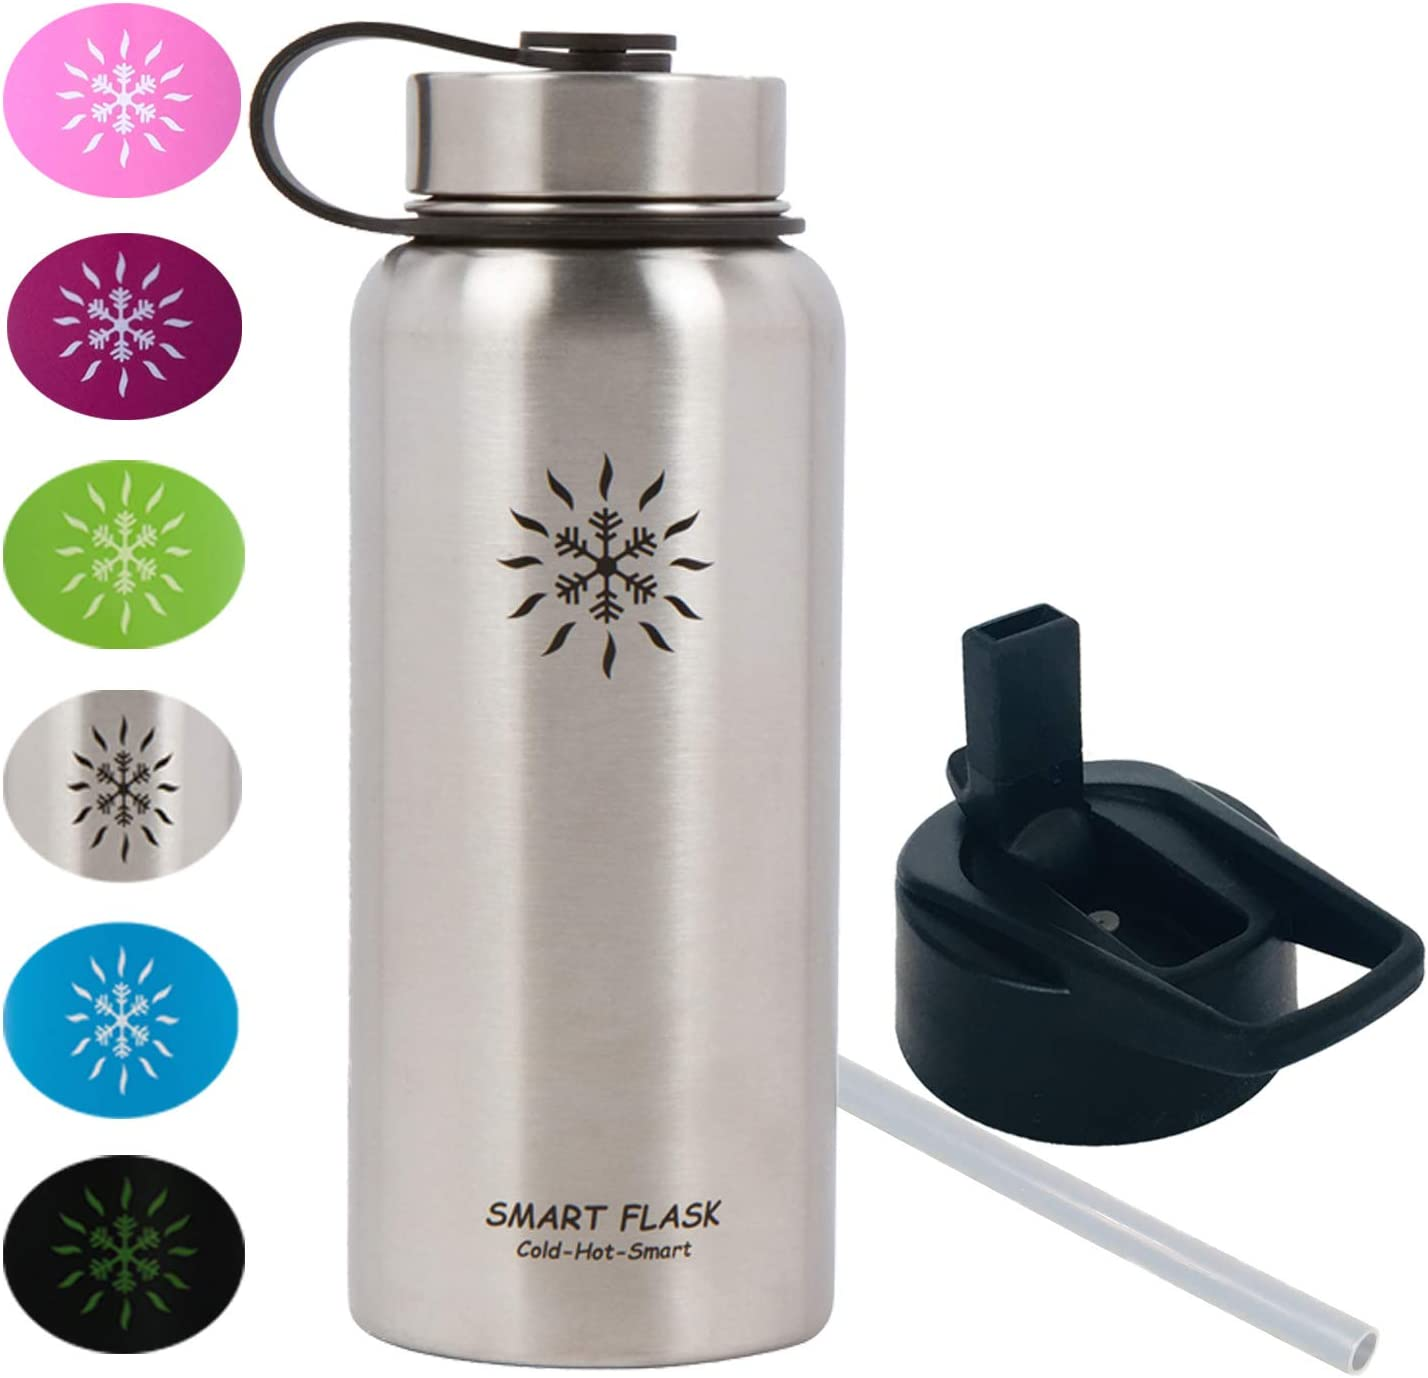 32oz Stainless Steel, Wide Mouth, Vacuum Insulated, Double Walled Water Bottle, Includes Leakproof Travel Lid and Easy Carry Straw Cap